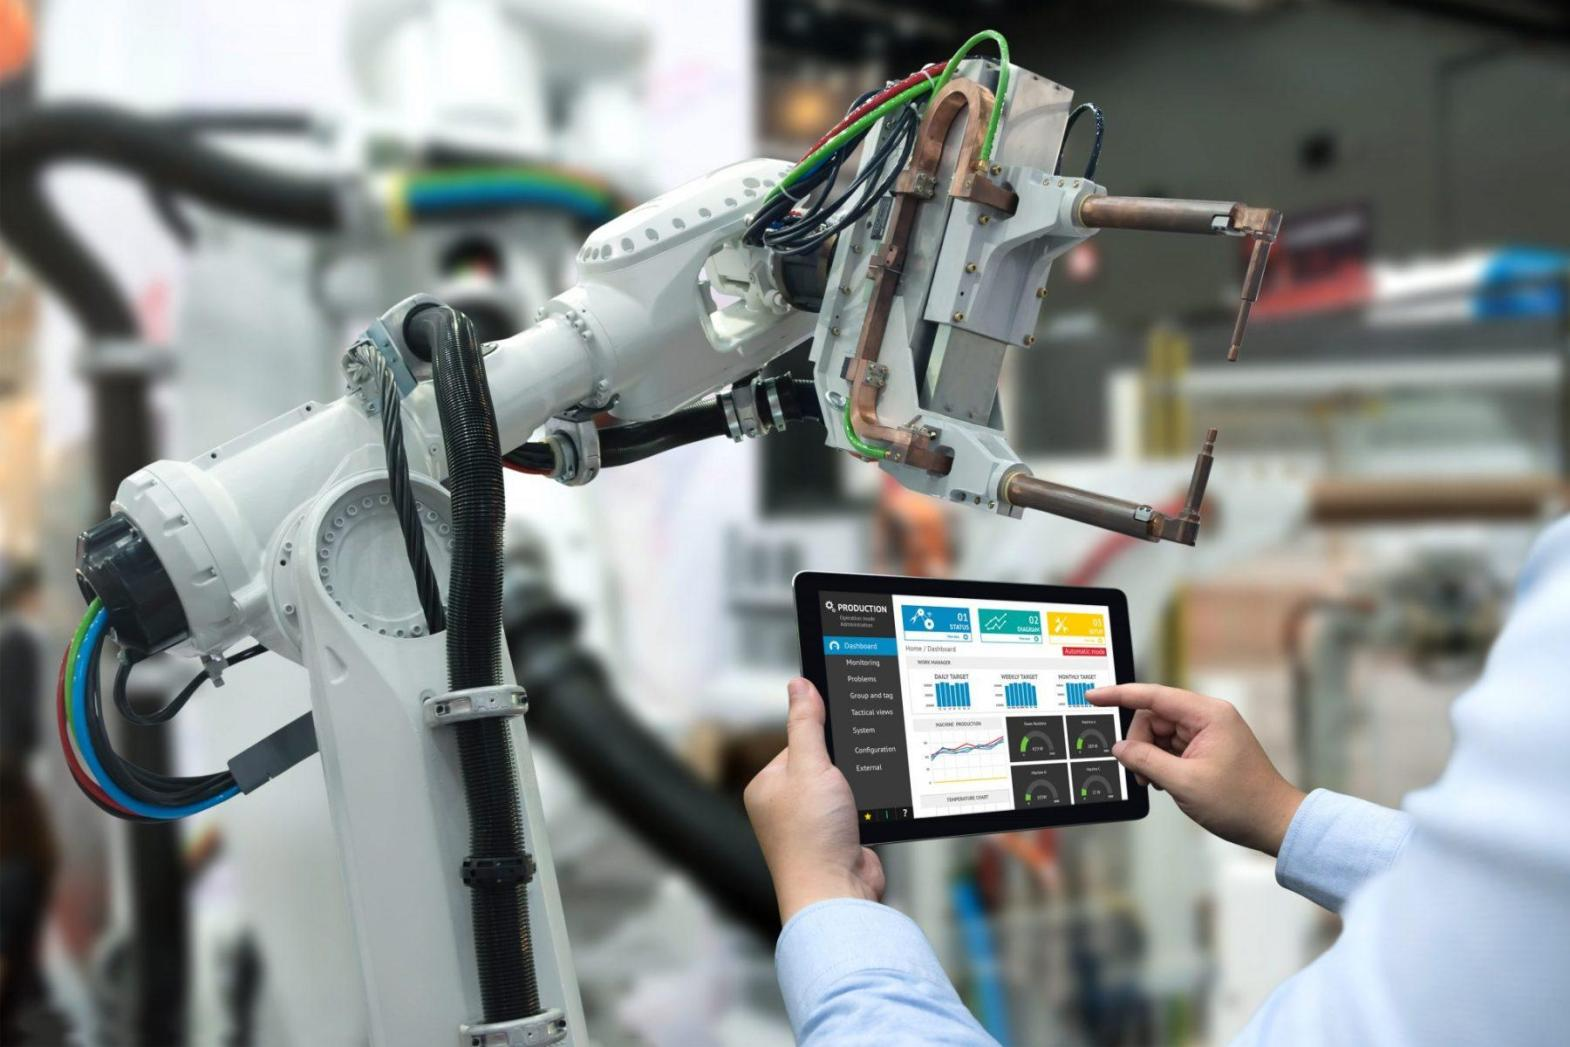 AI as a Job Saver: Japan's Auto Industry is embracing Industry 4.0 to Save a Manufacturing Sector Imperiled by a Labor Crunch